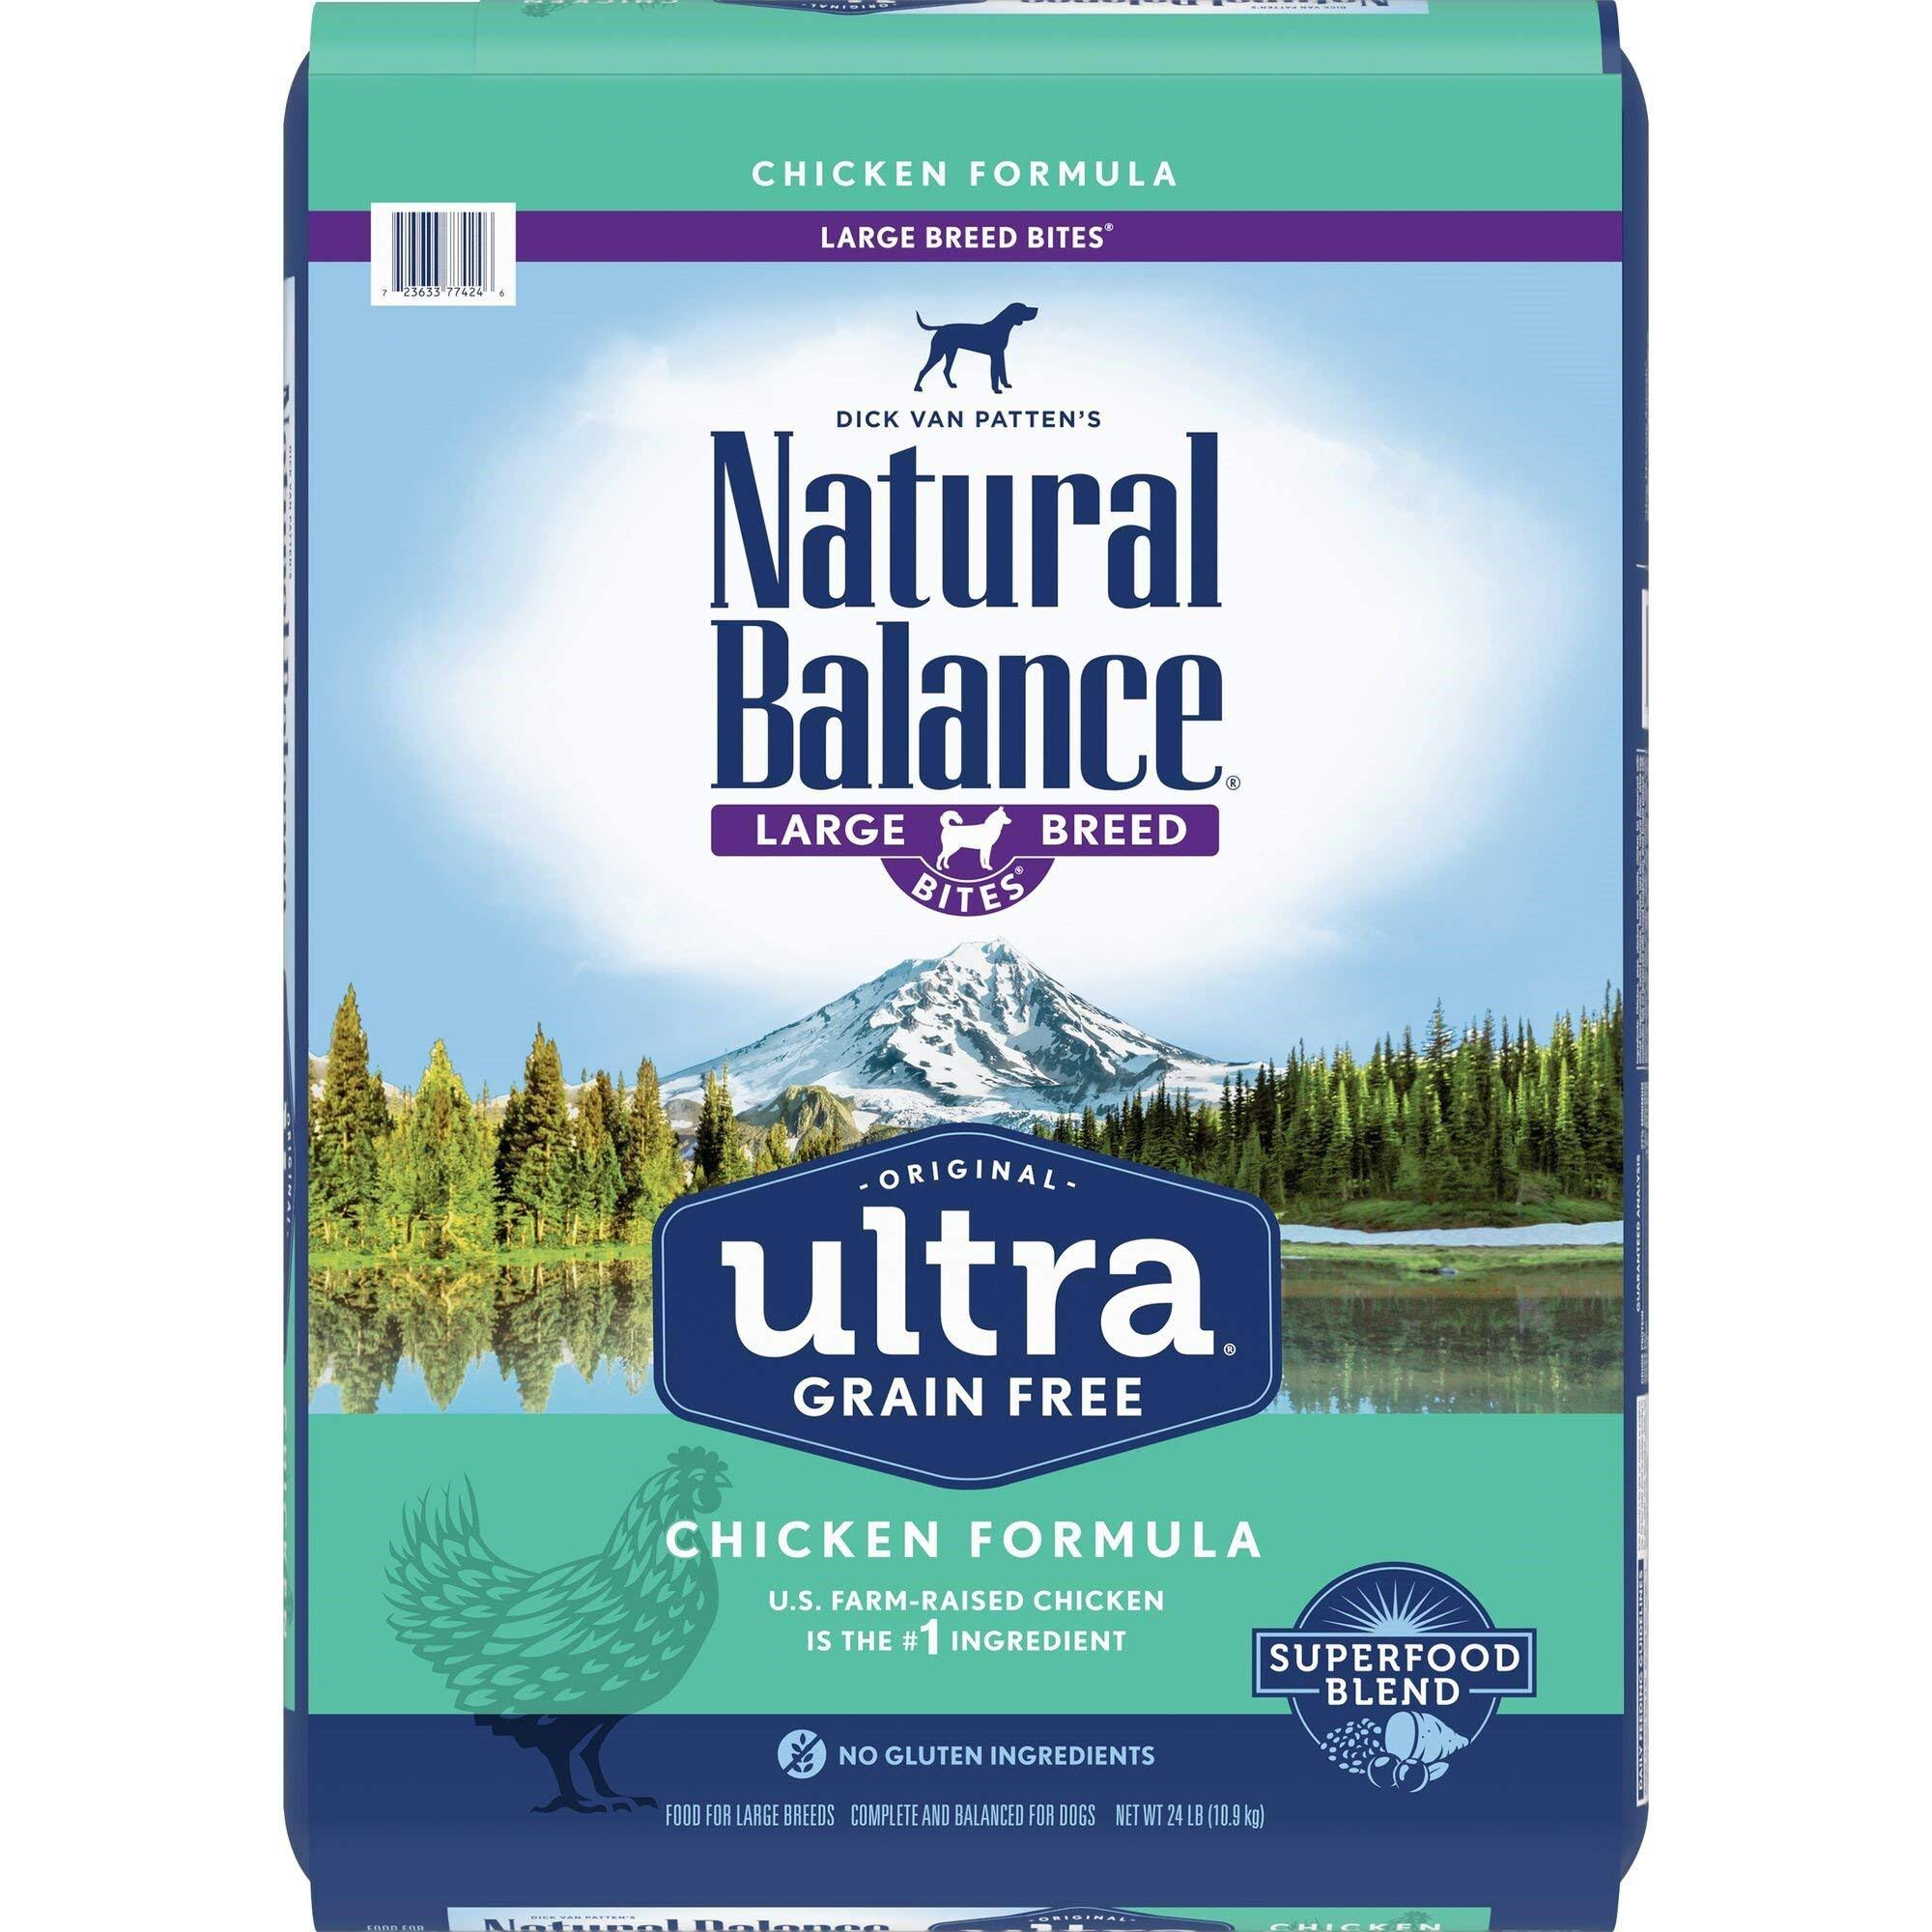 Natural Balance Original Ultra Grain Free Dry Dog Food - Chicken Formula, 24lbs